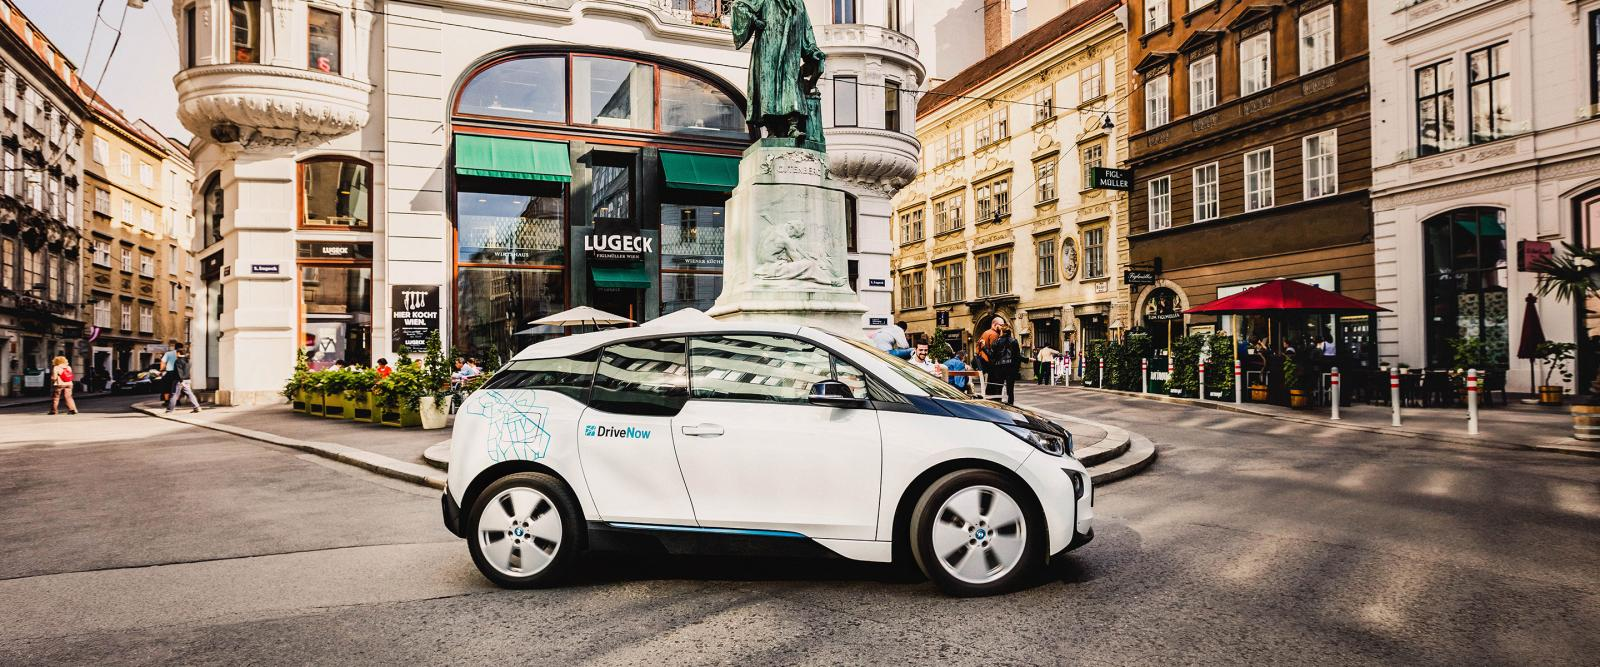 drivenow-carsharing-wien-so-funktioniert-carsharing